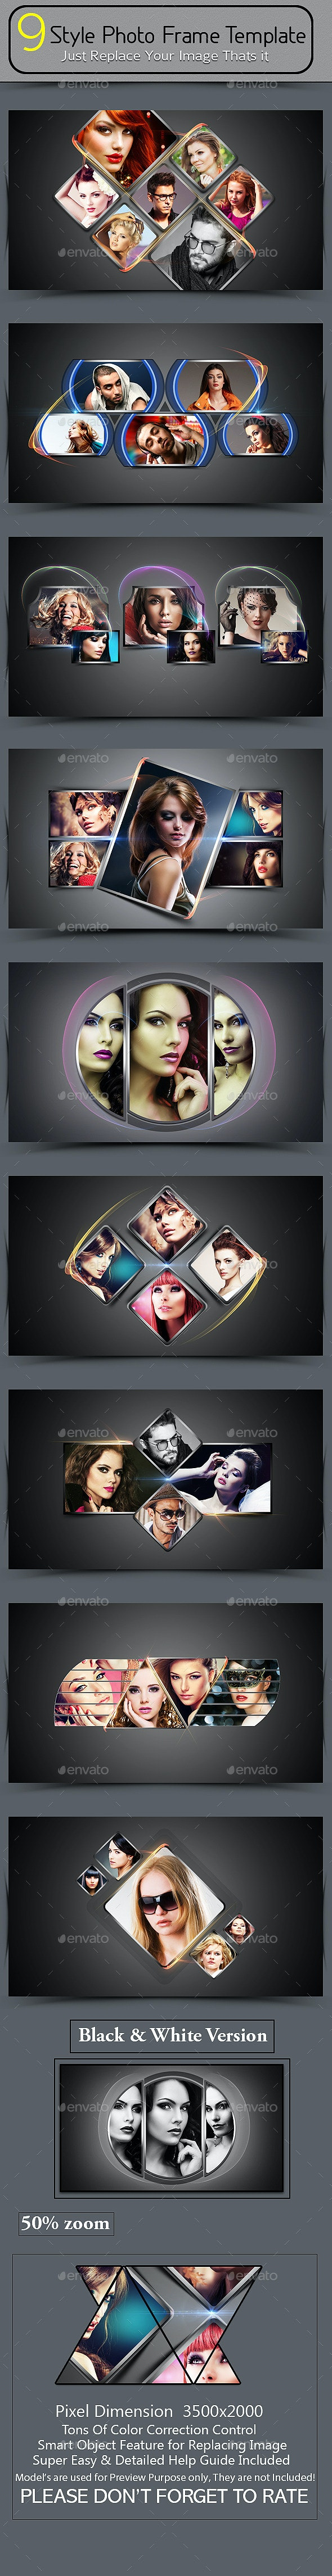 9 Style Photo Frame Template - Photo Templates Graphics